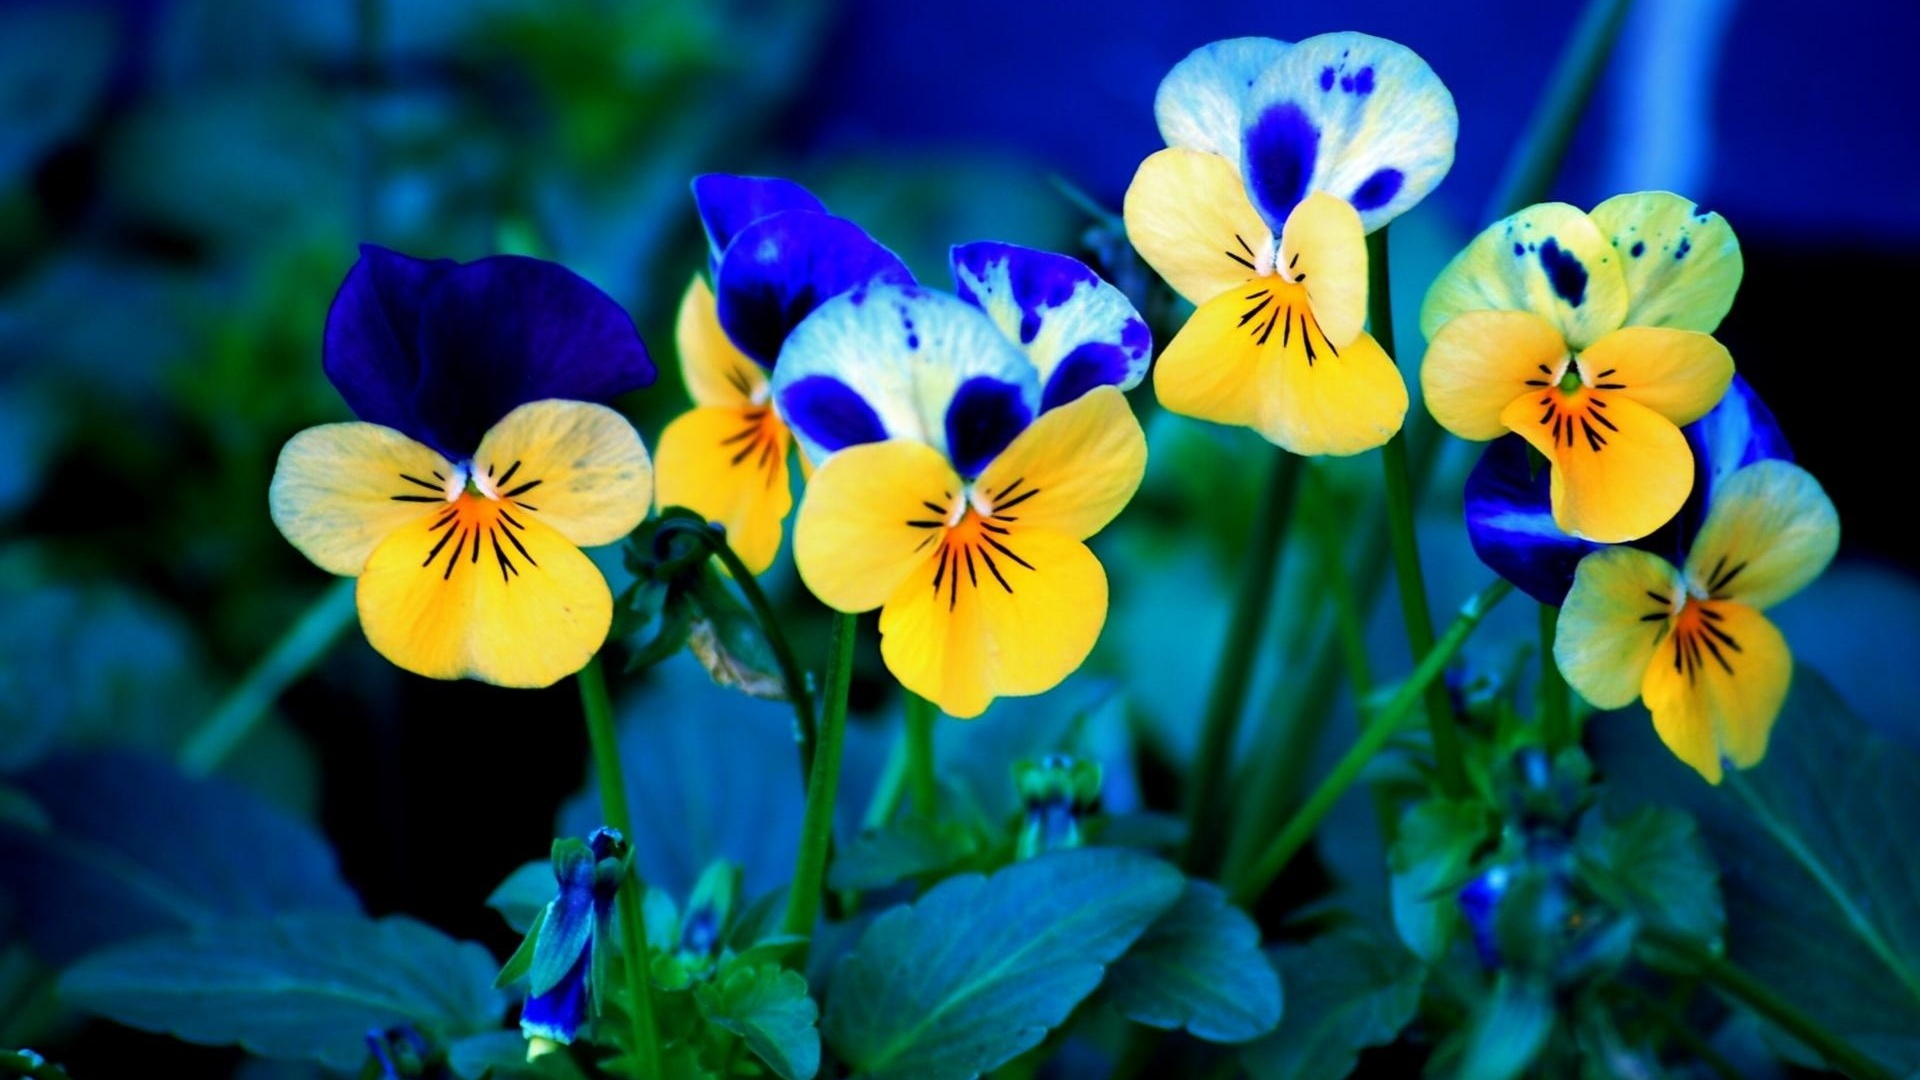 75 Spring Flowers Wallpaper Backgrounds On Wallpapersafari